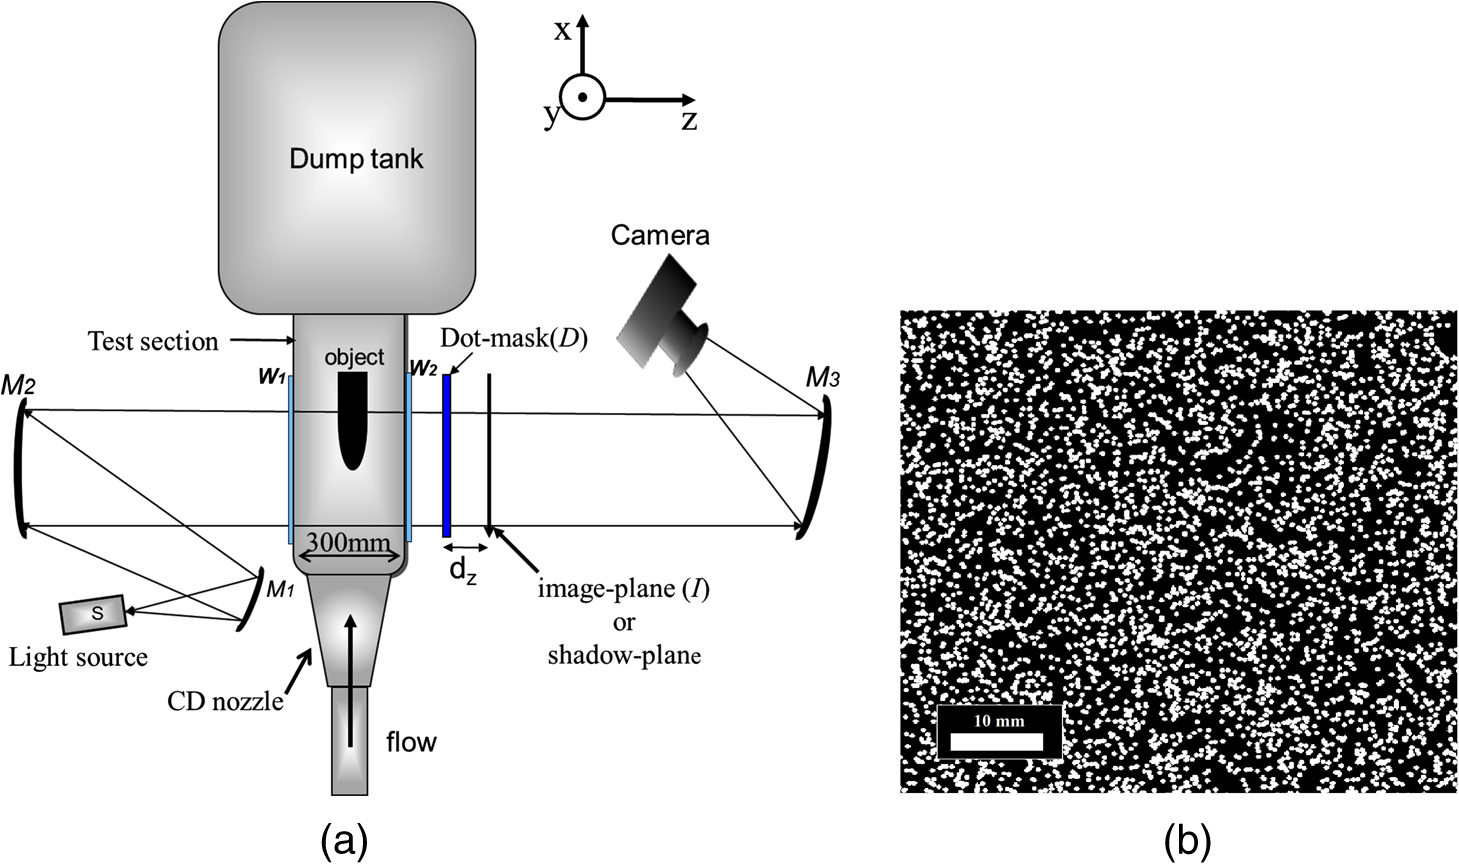 Quantitative Estimation Of Density Variation In High Speed Flows The Supports Draw Thequantitative Shear And Bending Moment Diagrams Shadow At Plane I Is Imaged By A Digital Camera With Help Spherical Concave Mirror M3 M 3 B Typical Region From Original Dot Pattern